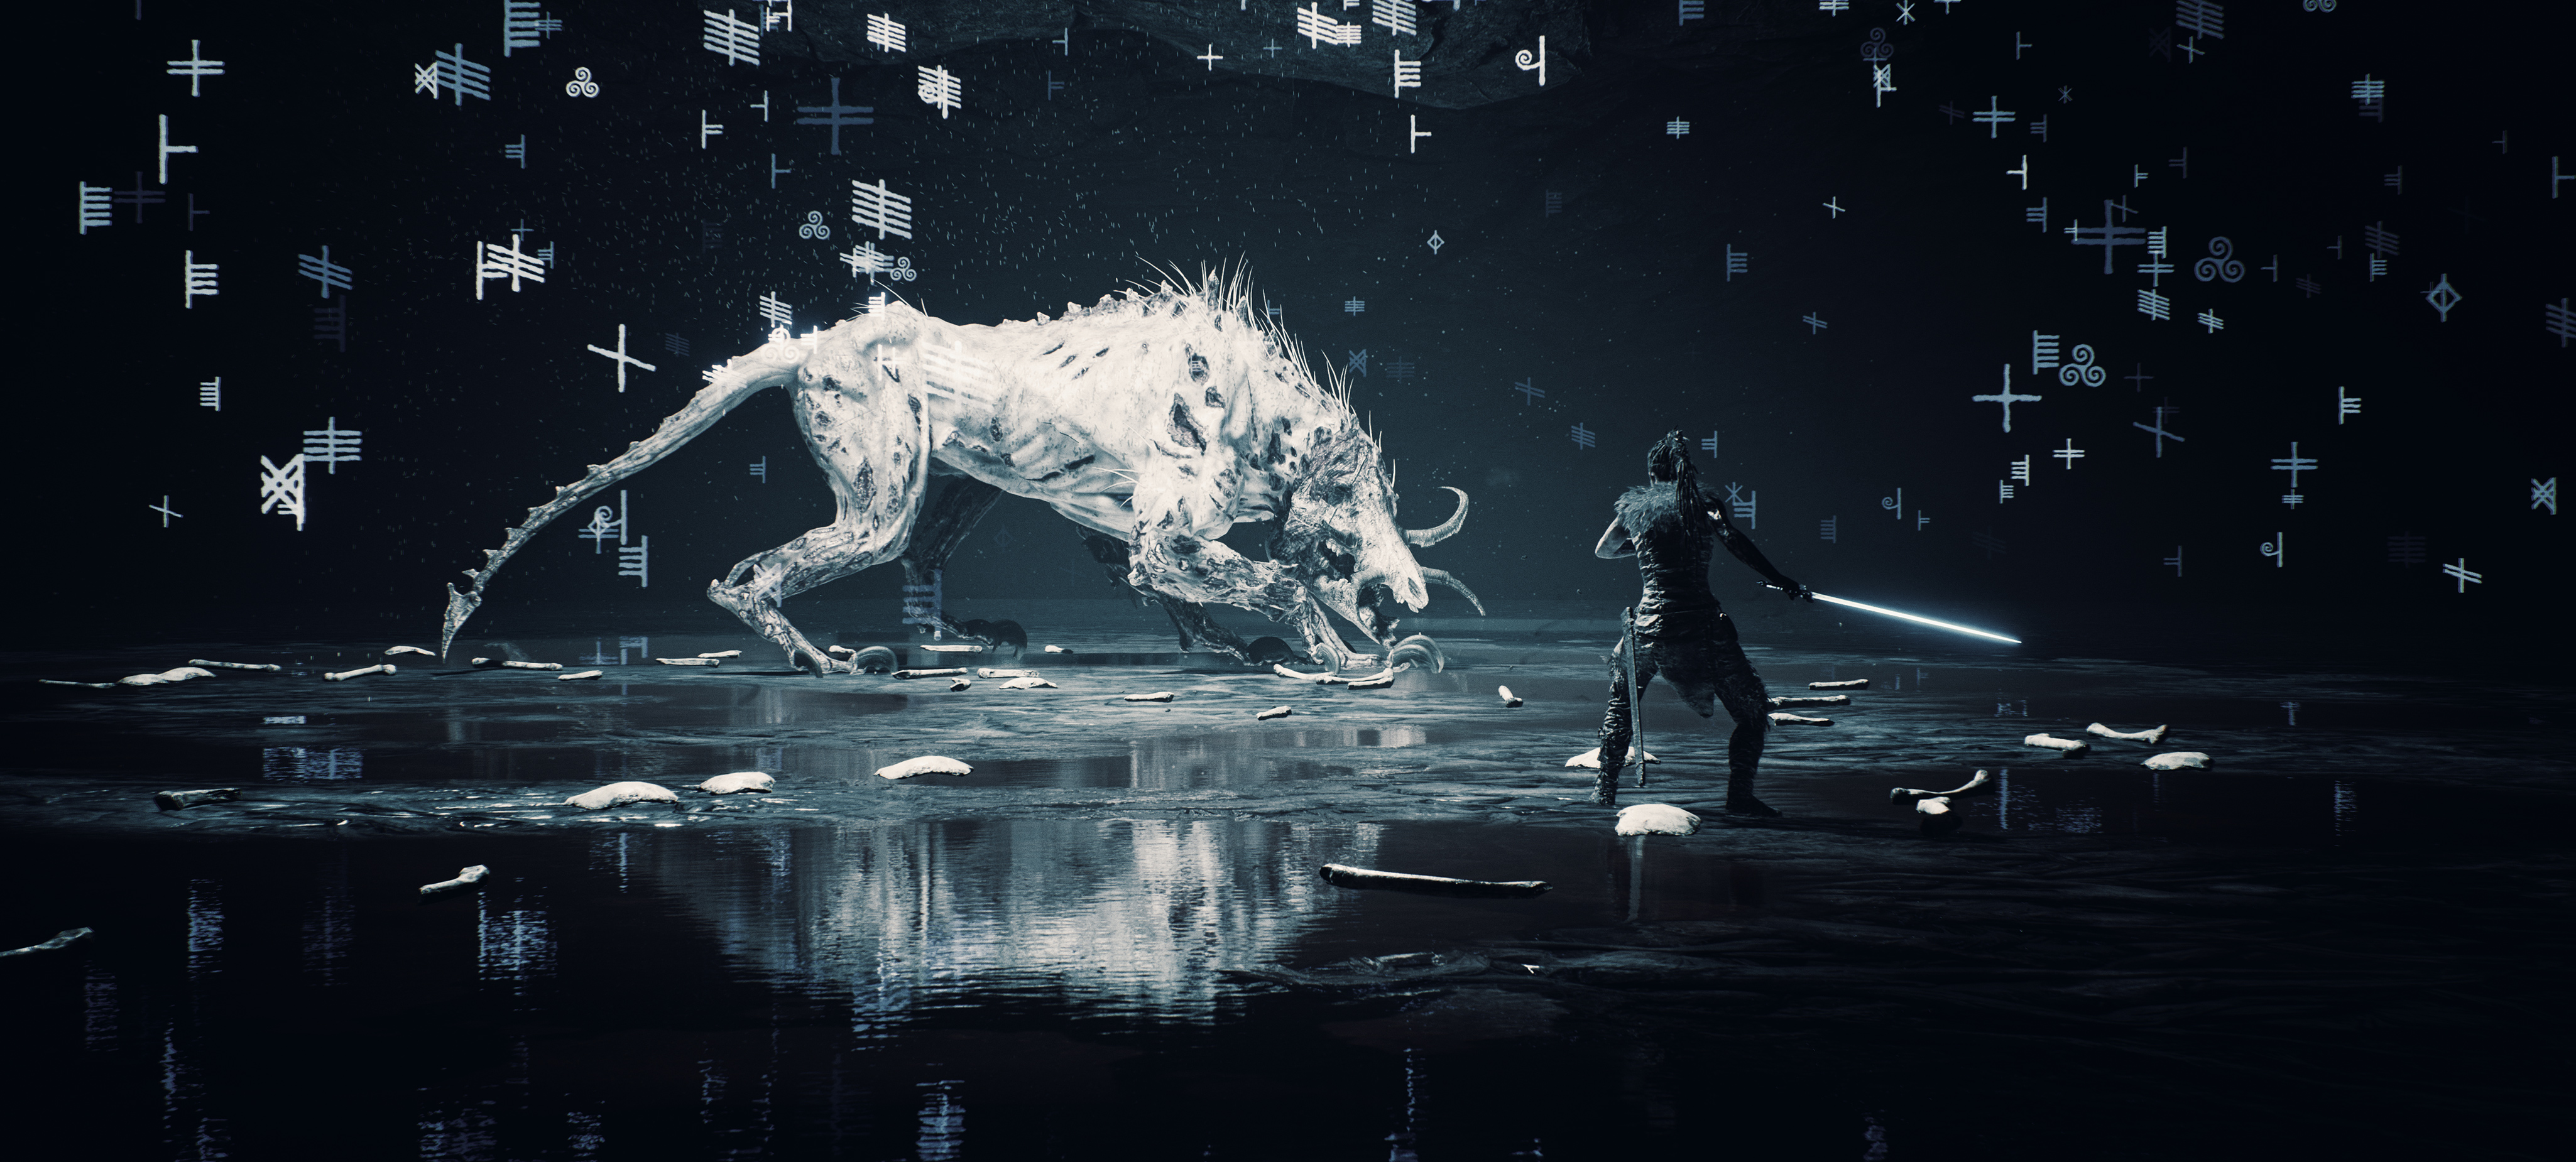 4k hellblade senuas sacrifice 2019 hd games 4k wallpapers images backgrounds photos and - Sacrifice wallpaper ...